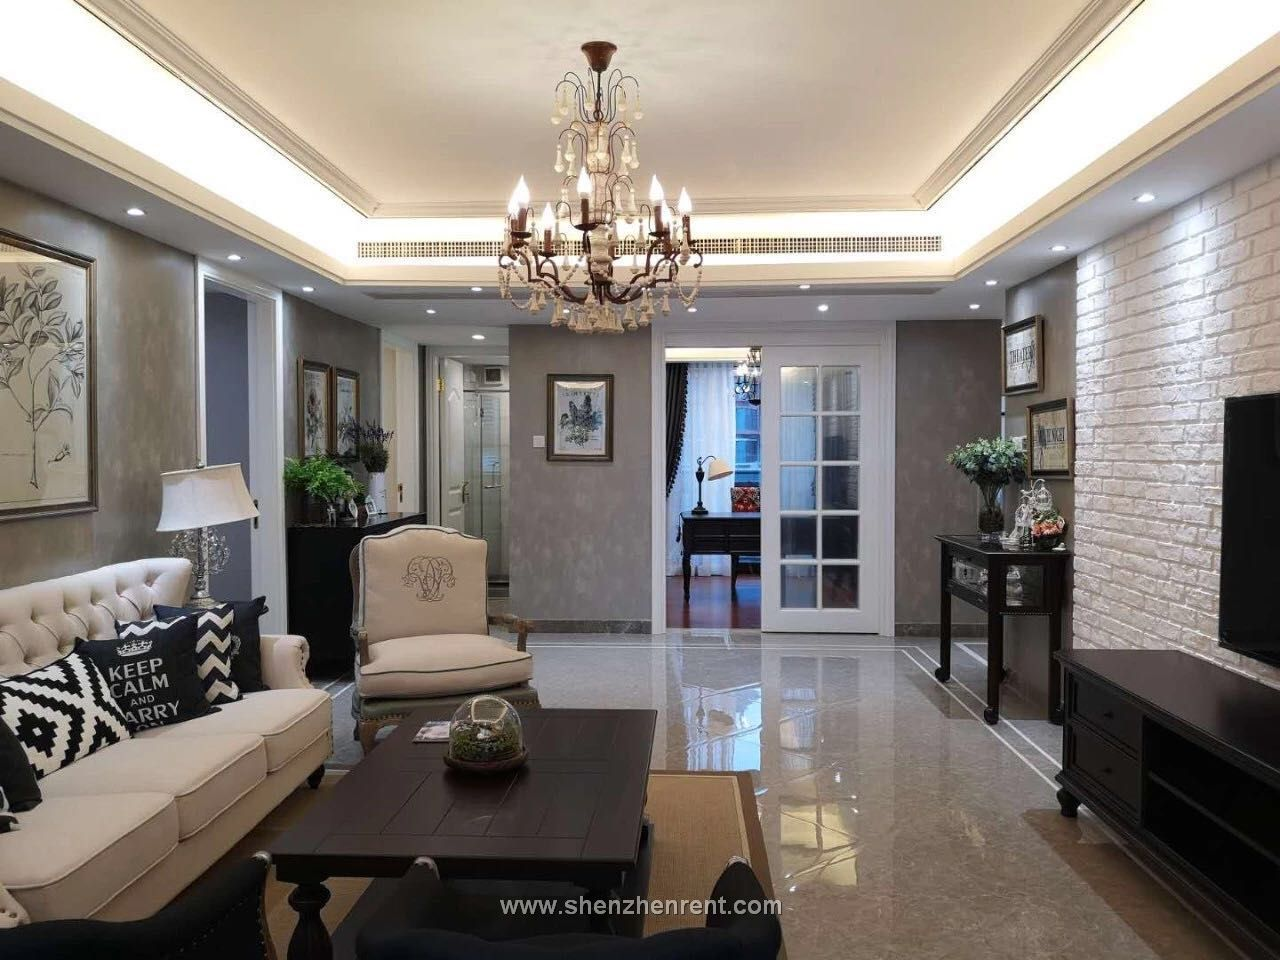 New decoration 4 bedrooms apartment in shekou for rent